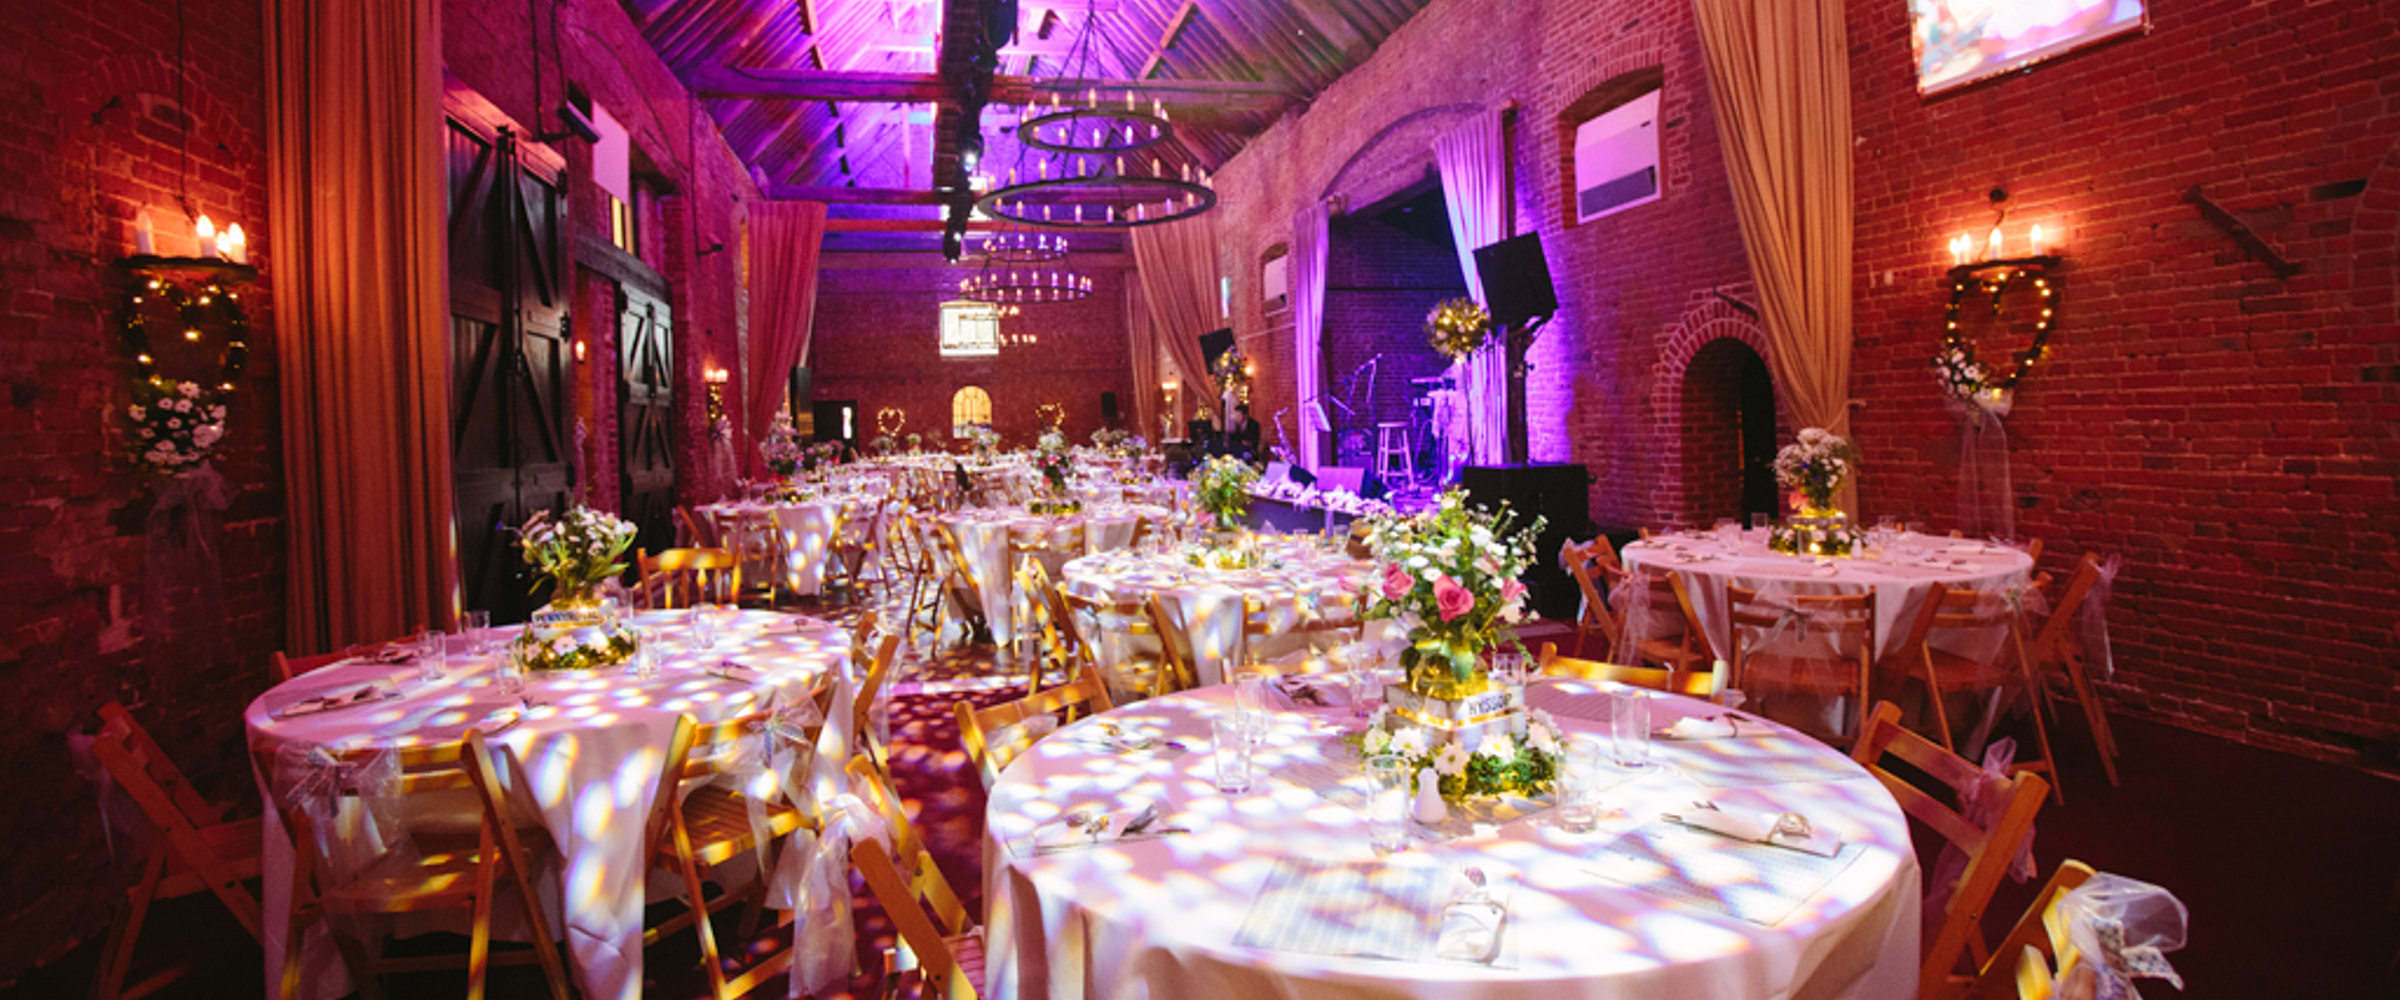 Lights for Weddings - Wedding lighting in Sussex, Surrey, Kent, Hampshire & London